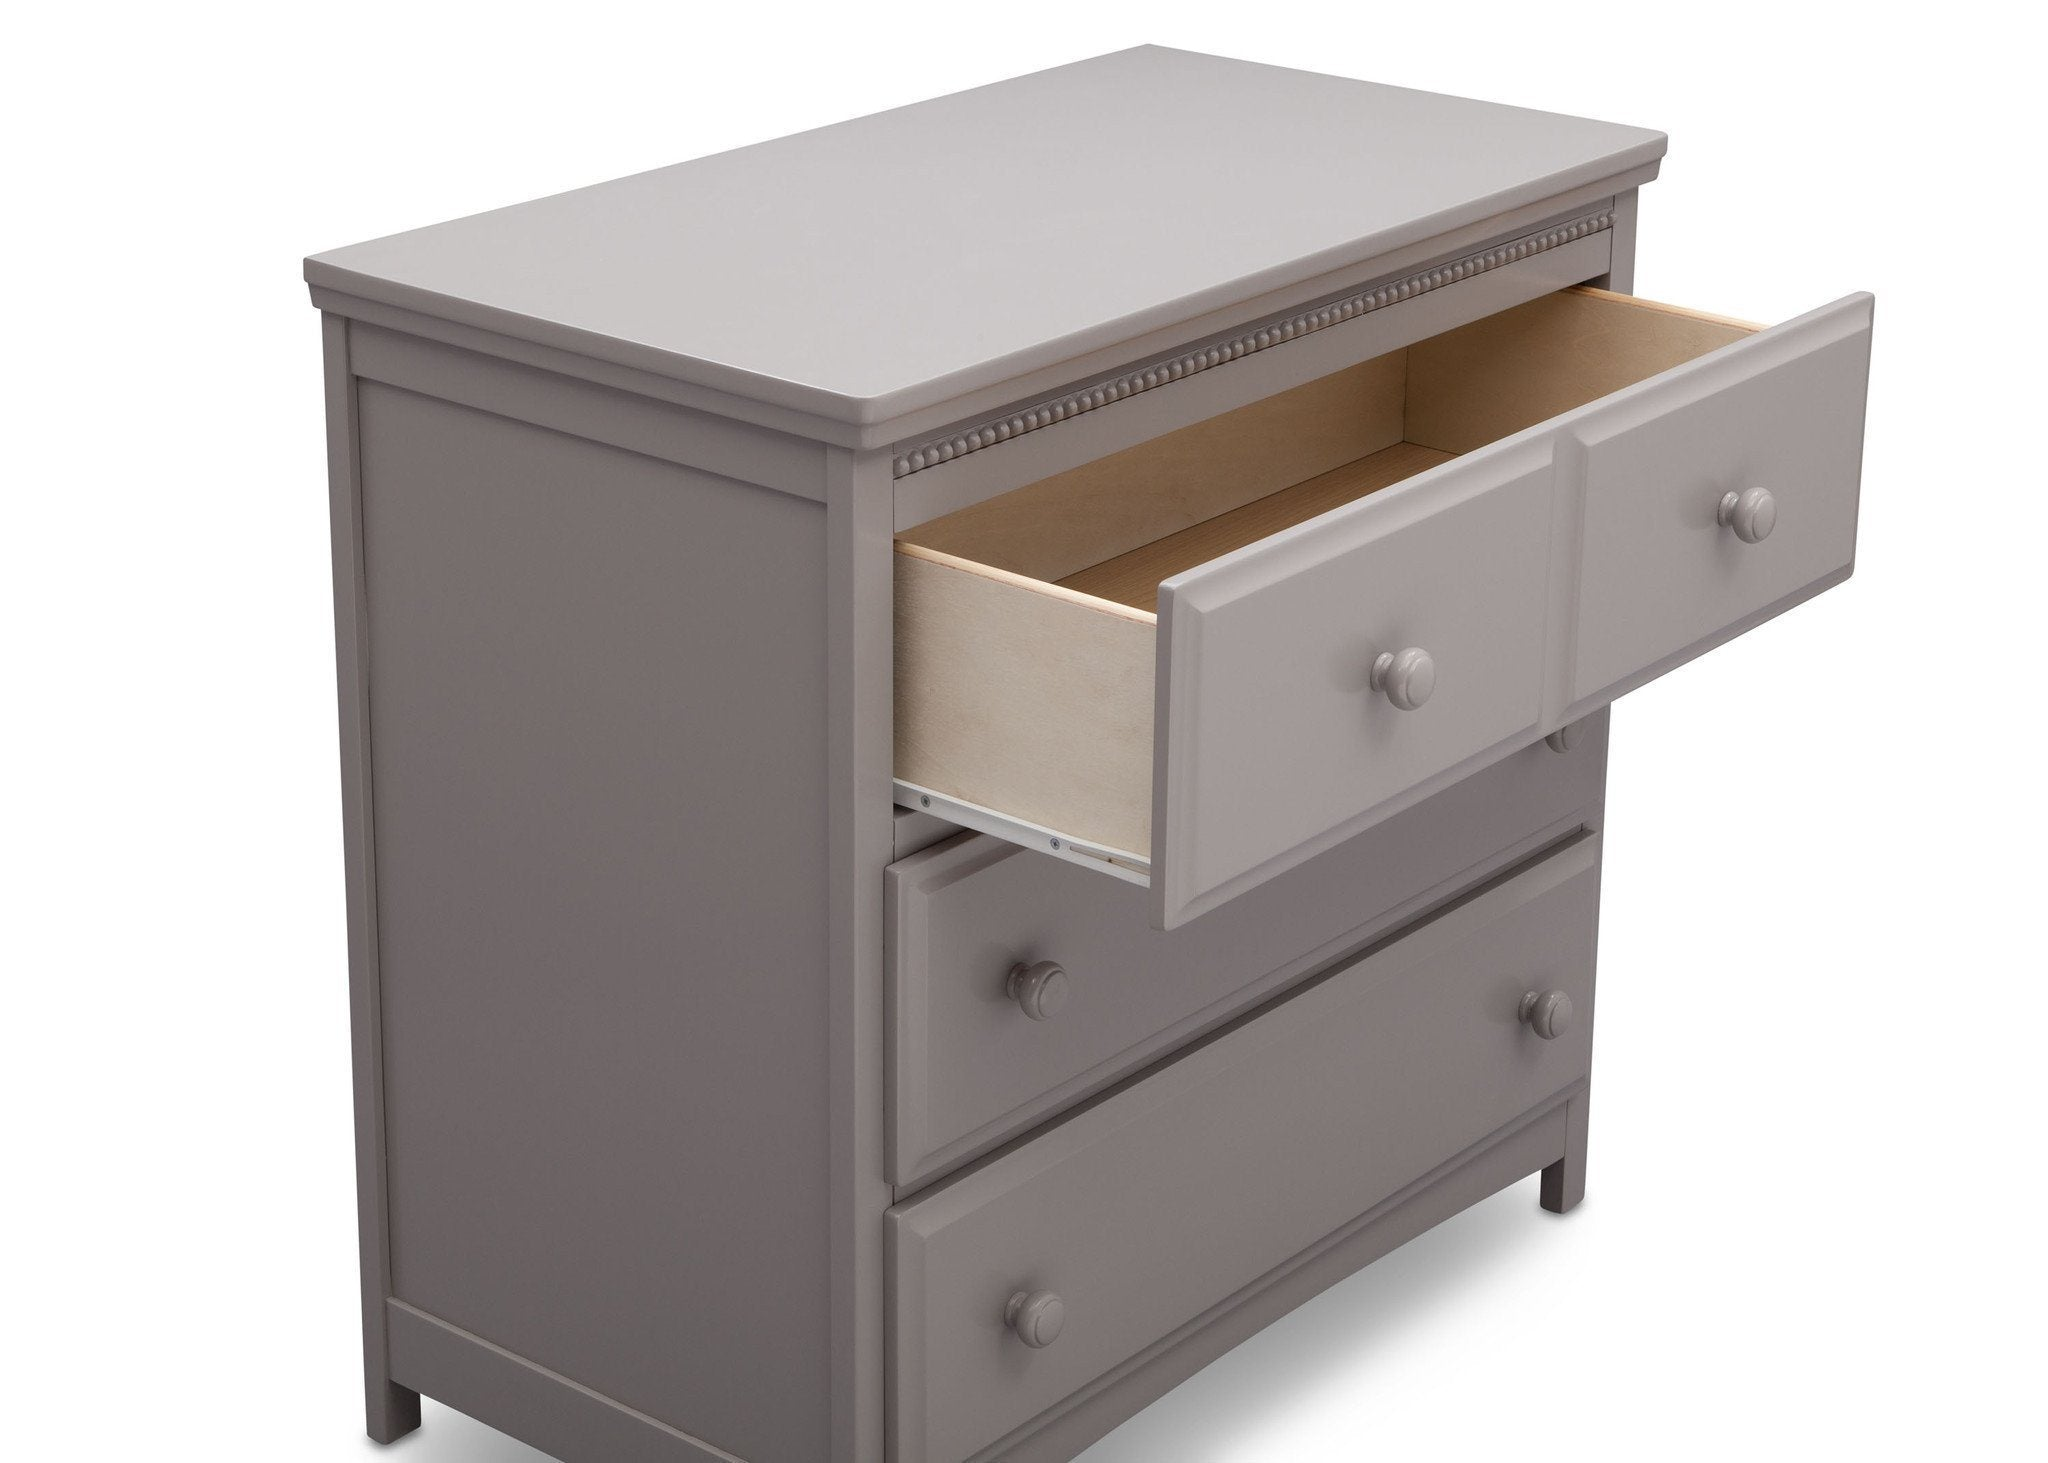 Delta Children Grey (026) Emerson 3 Drawer Dresser with Changing Top, Drawer Detail a4a